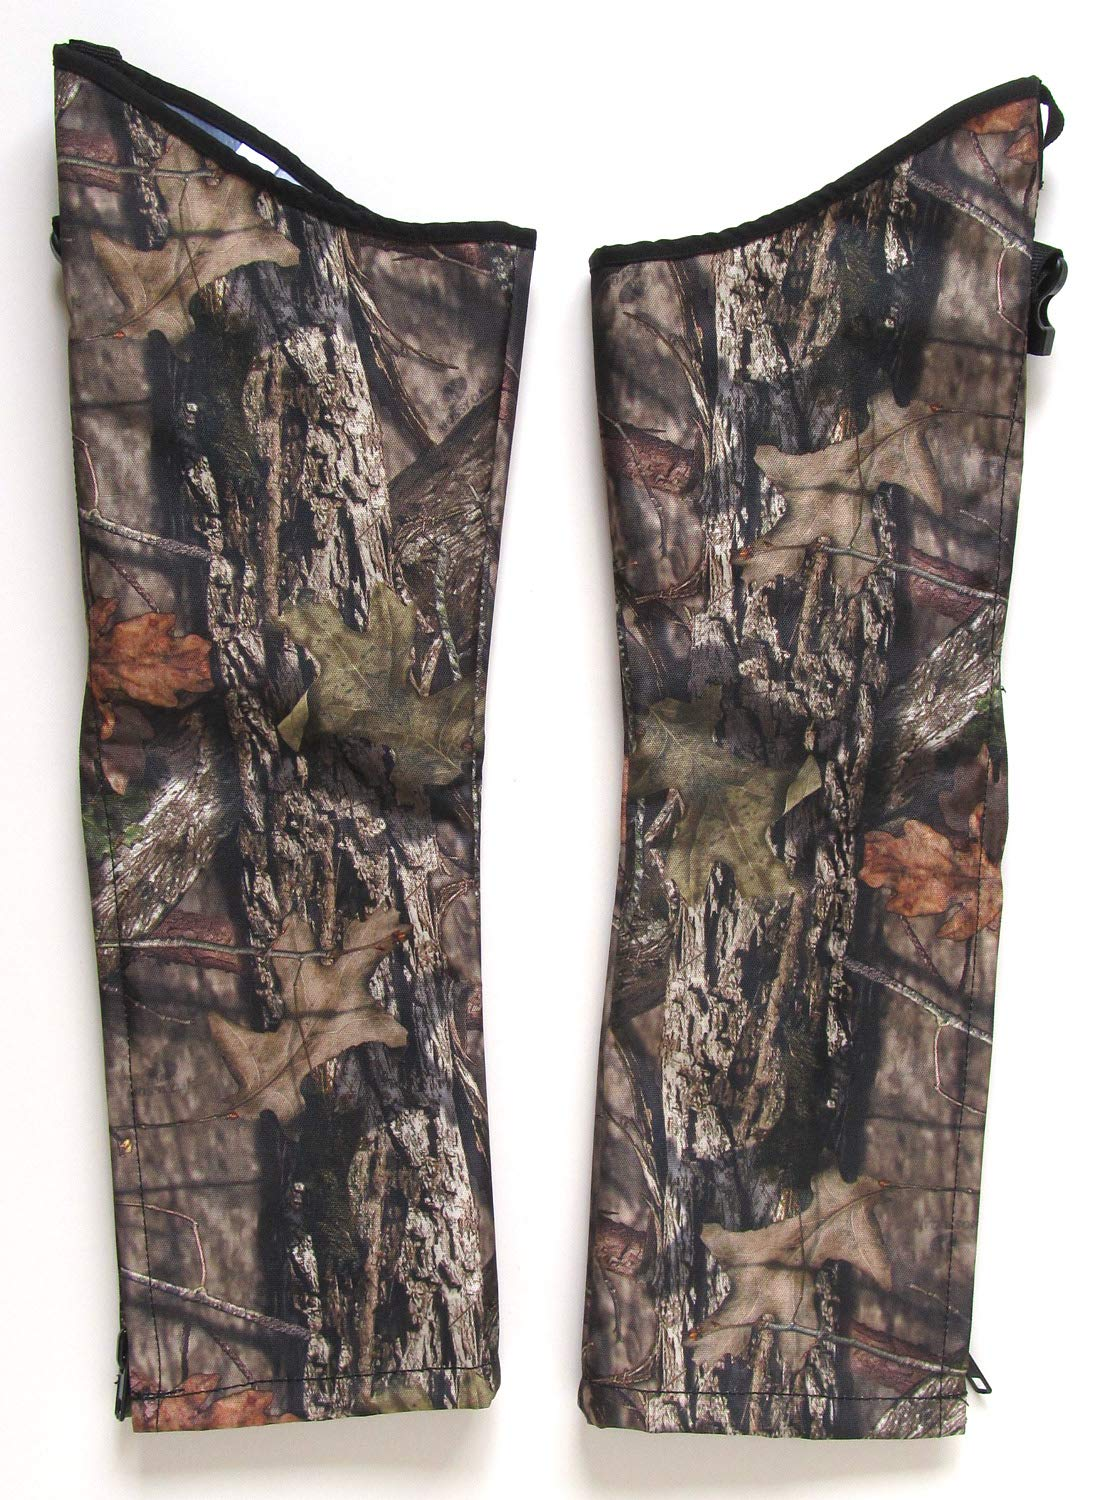 Snake Chaps for Kids - Youth Size Snake Chaps - Snake Bite Protection for Children (Mossy Oak, XLarge) by Crack Shot